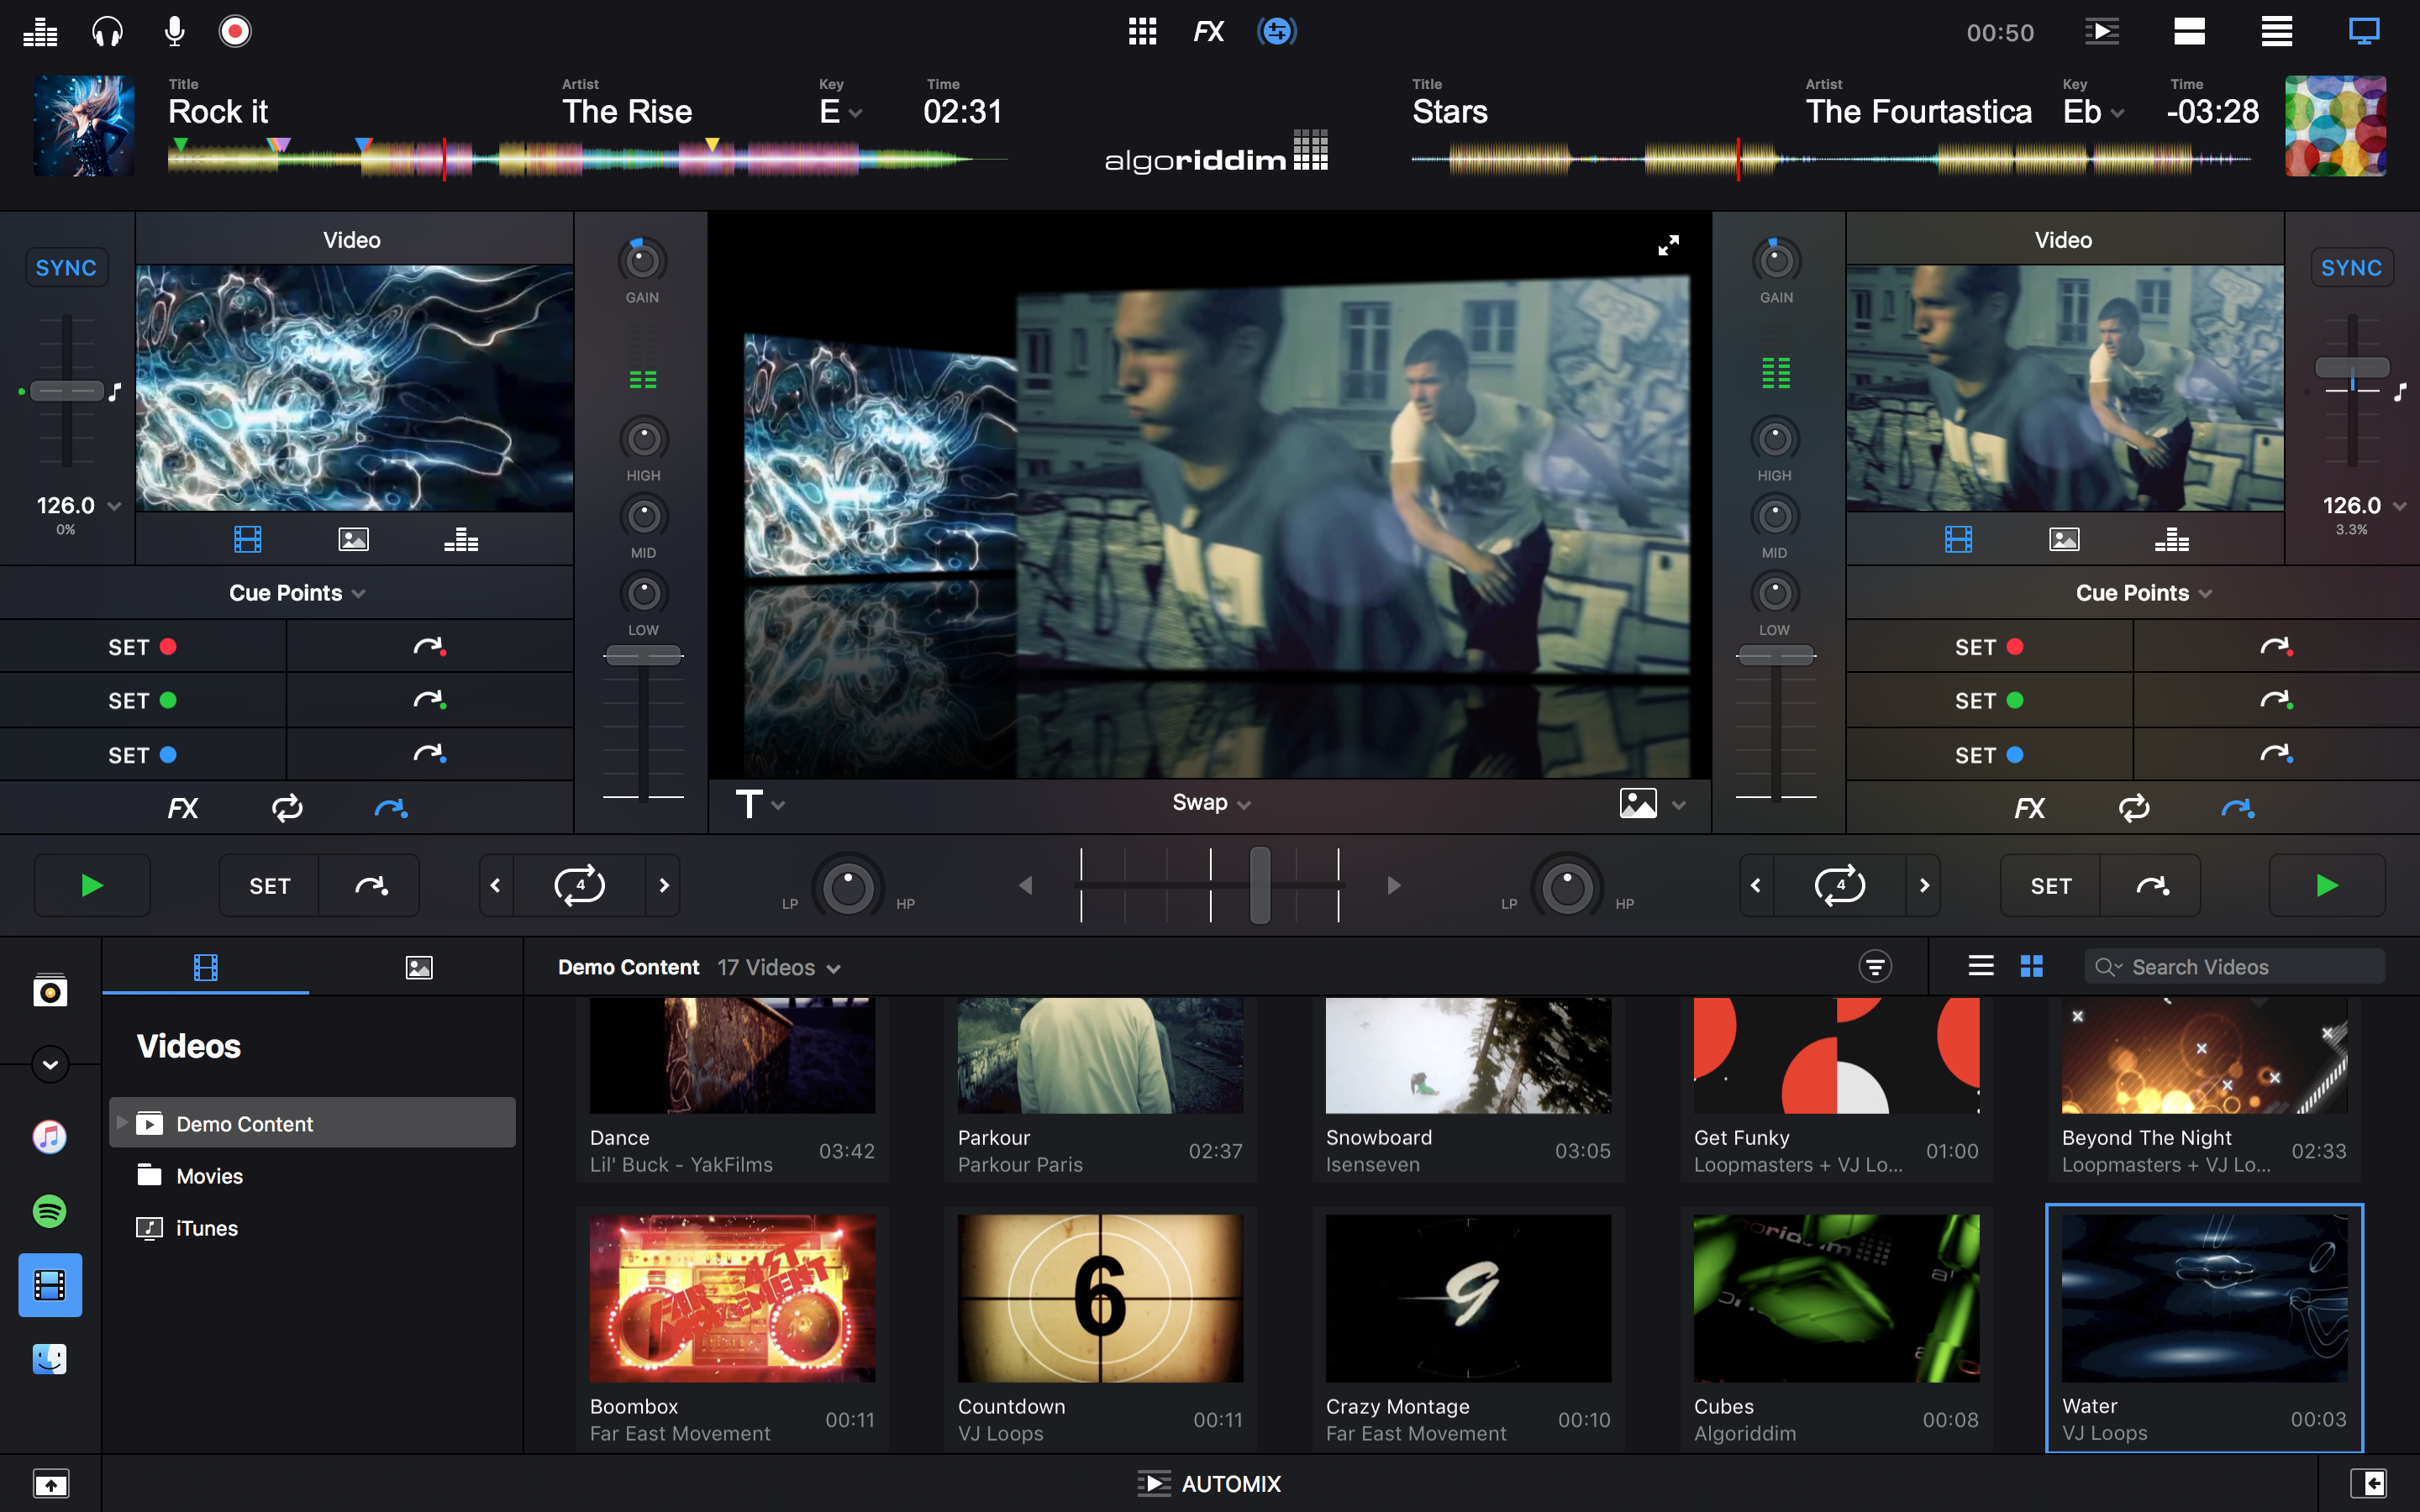 Djay Pro 2 Comes With Ai That Can Mix Songs Together For